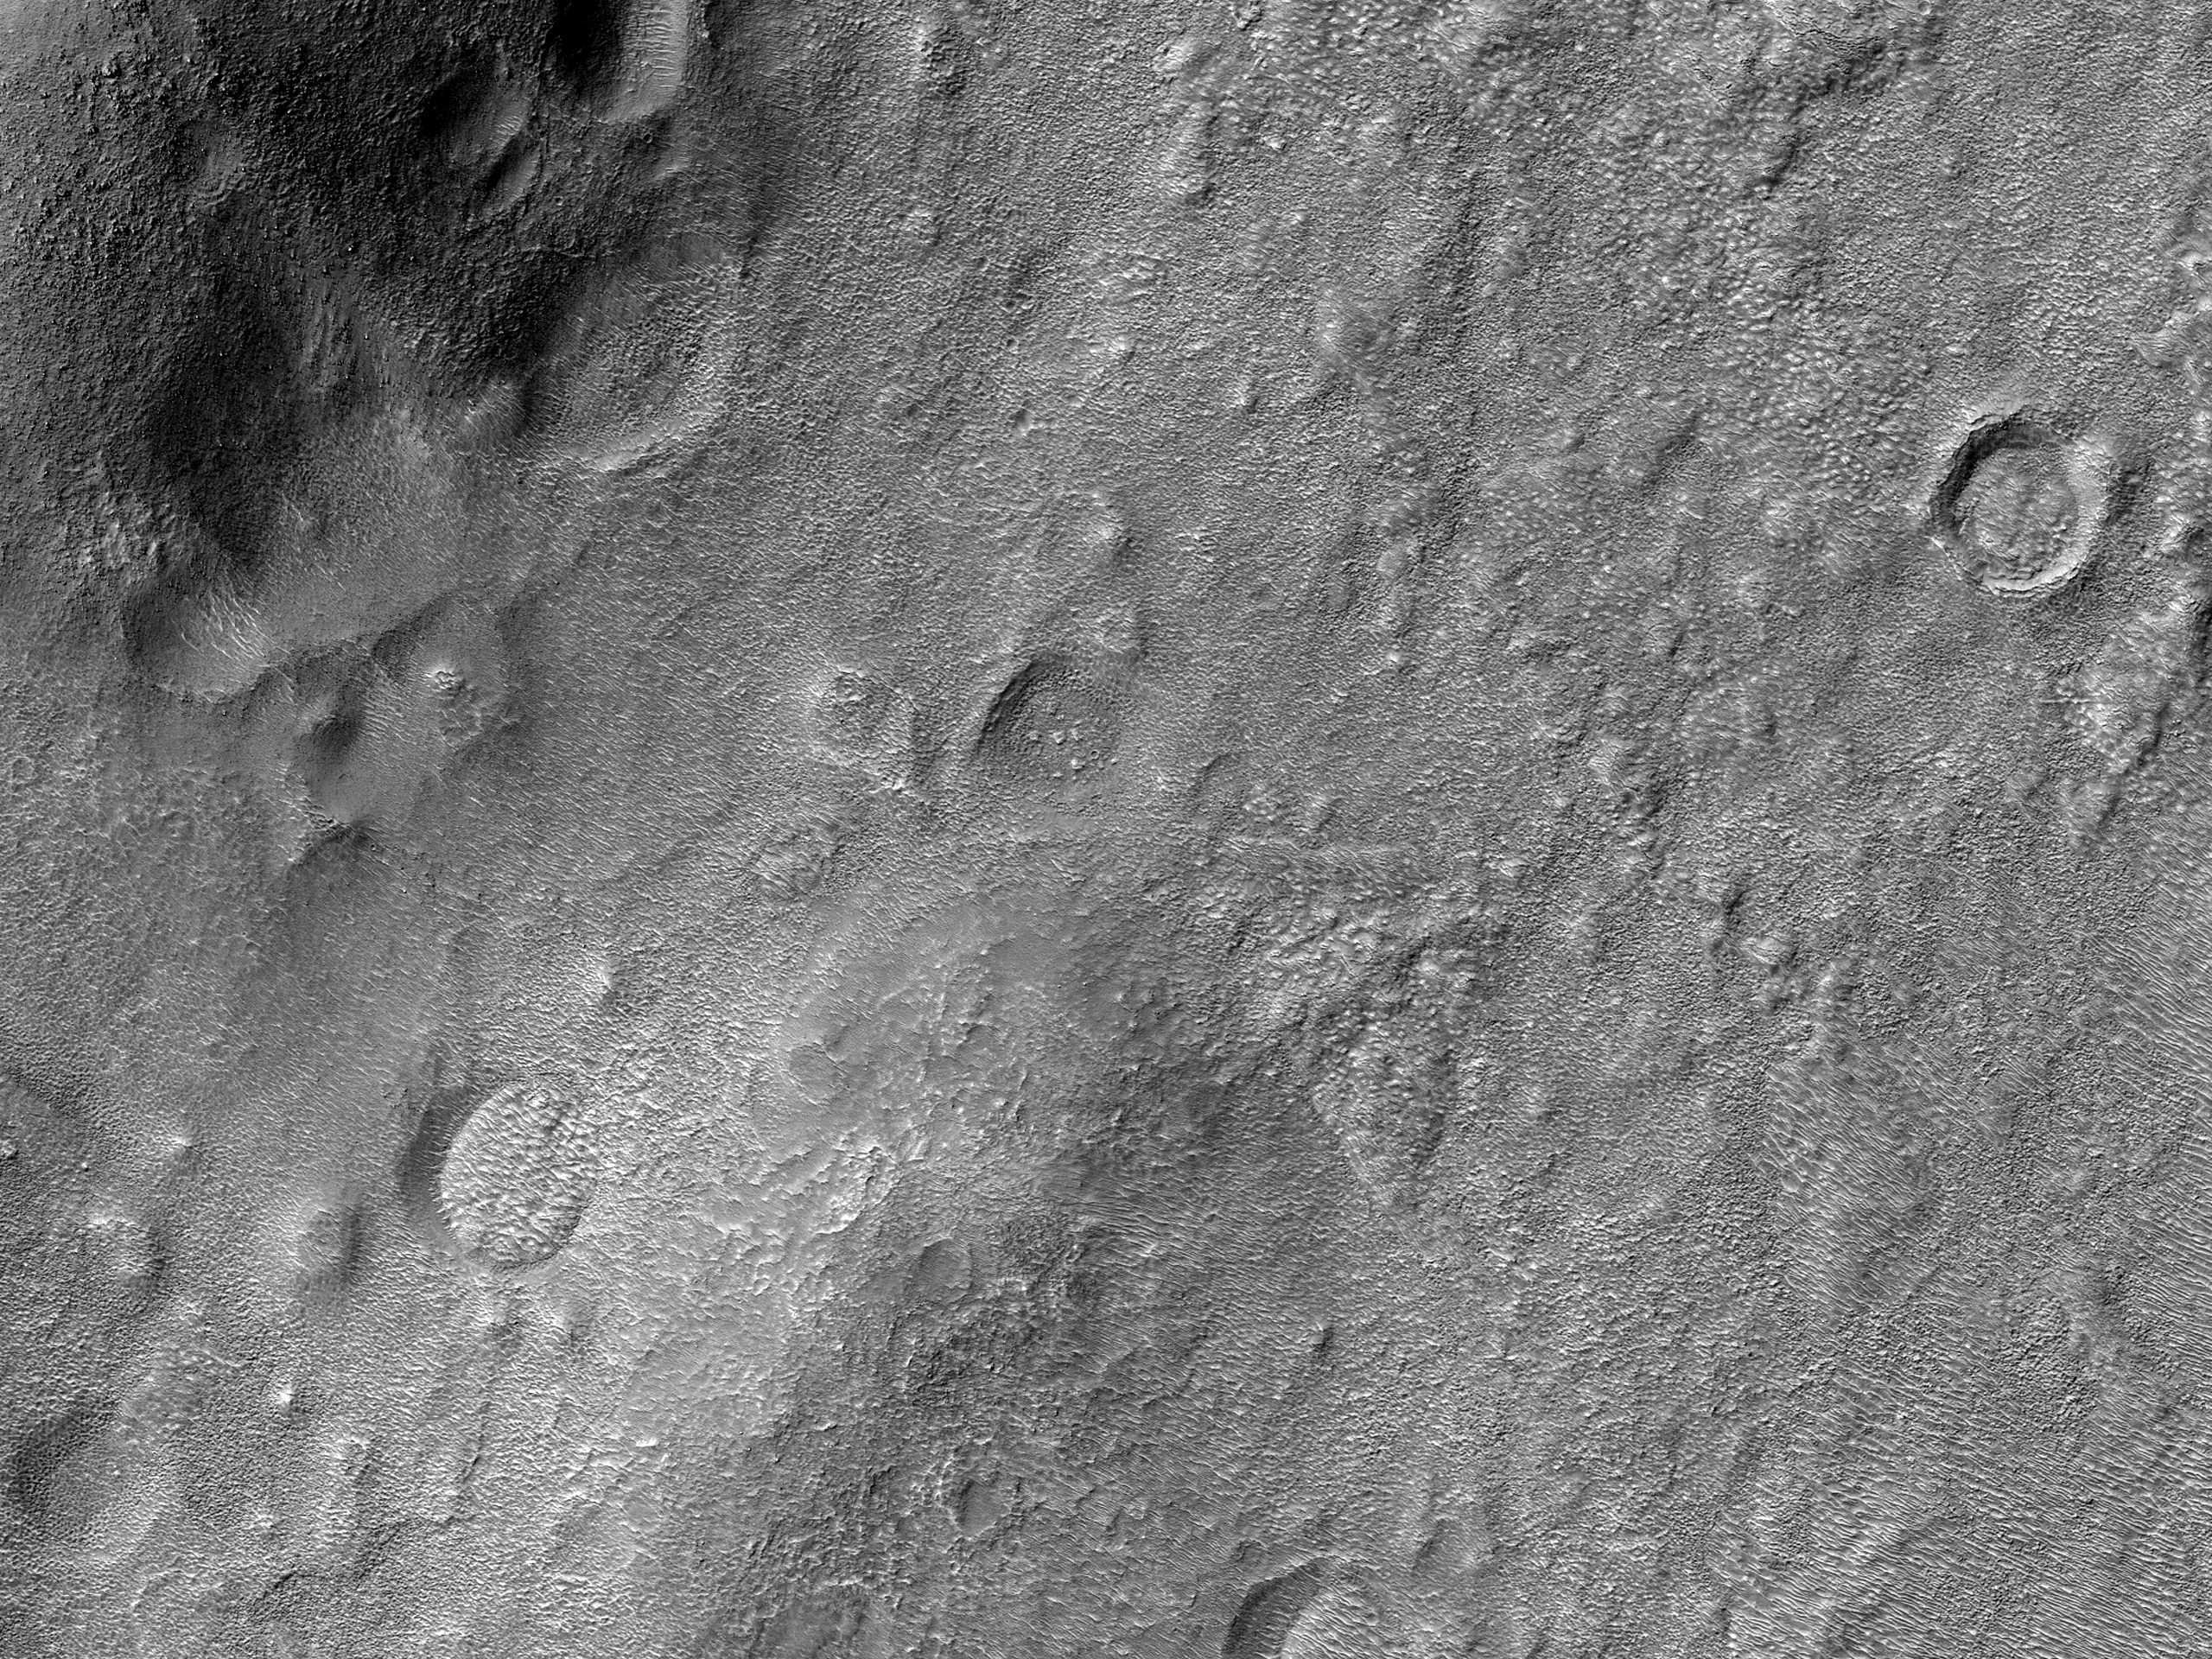 Southeast Hale Crater Ejecta